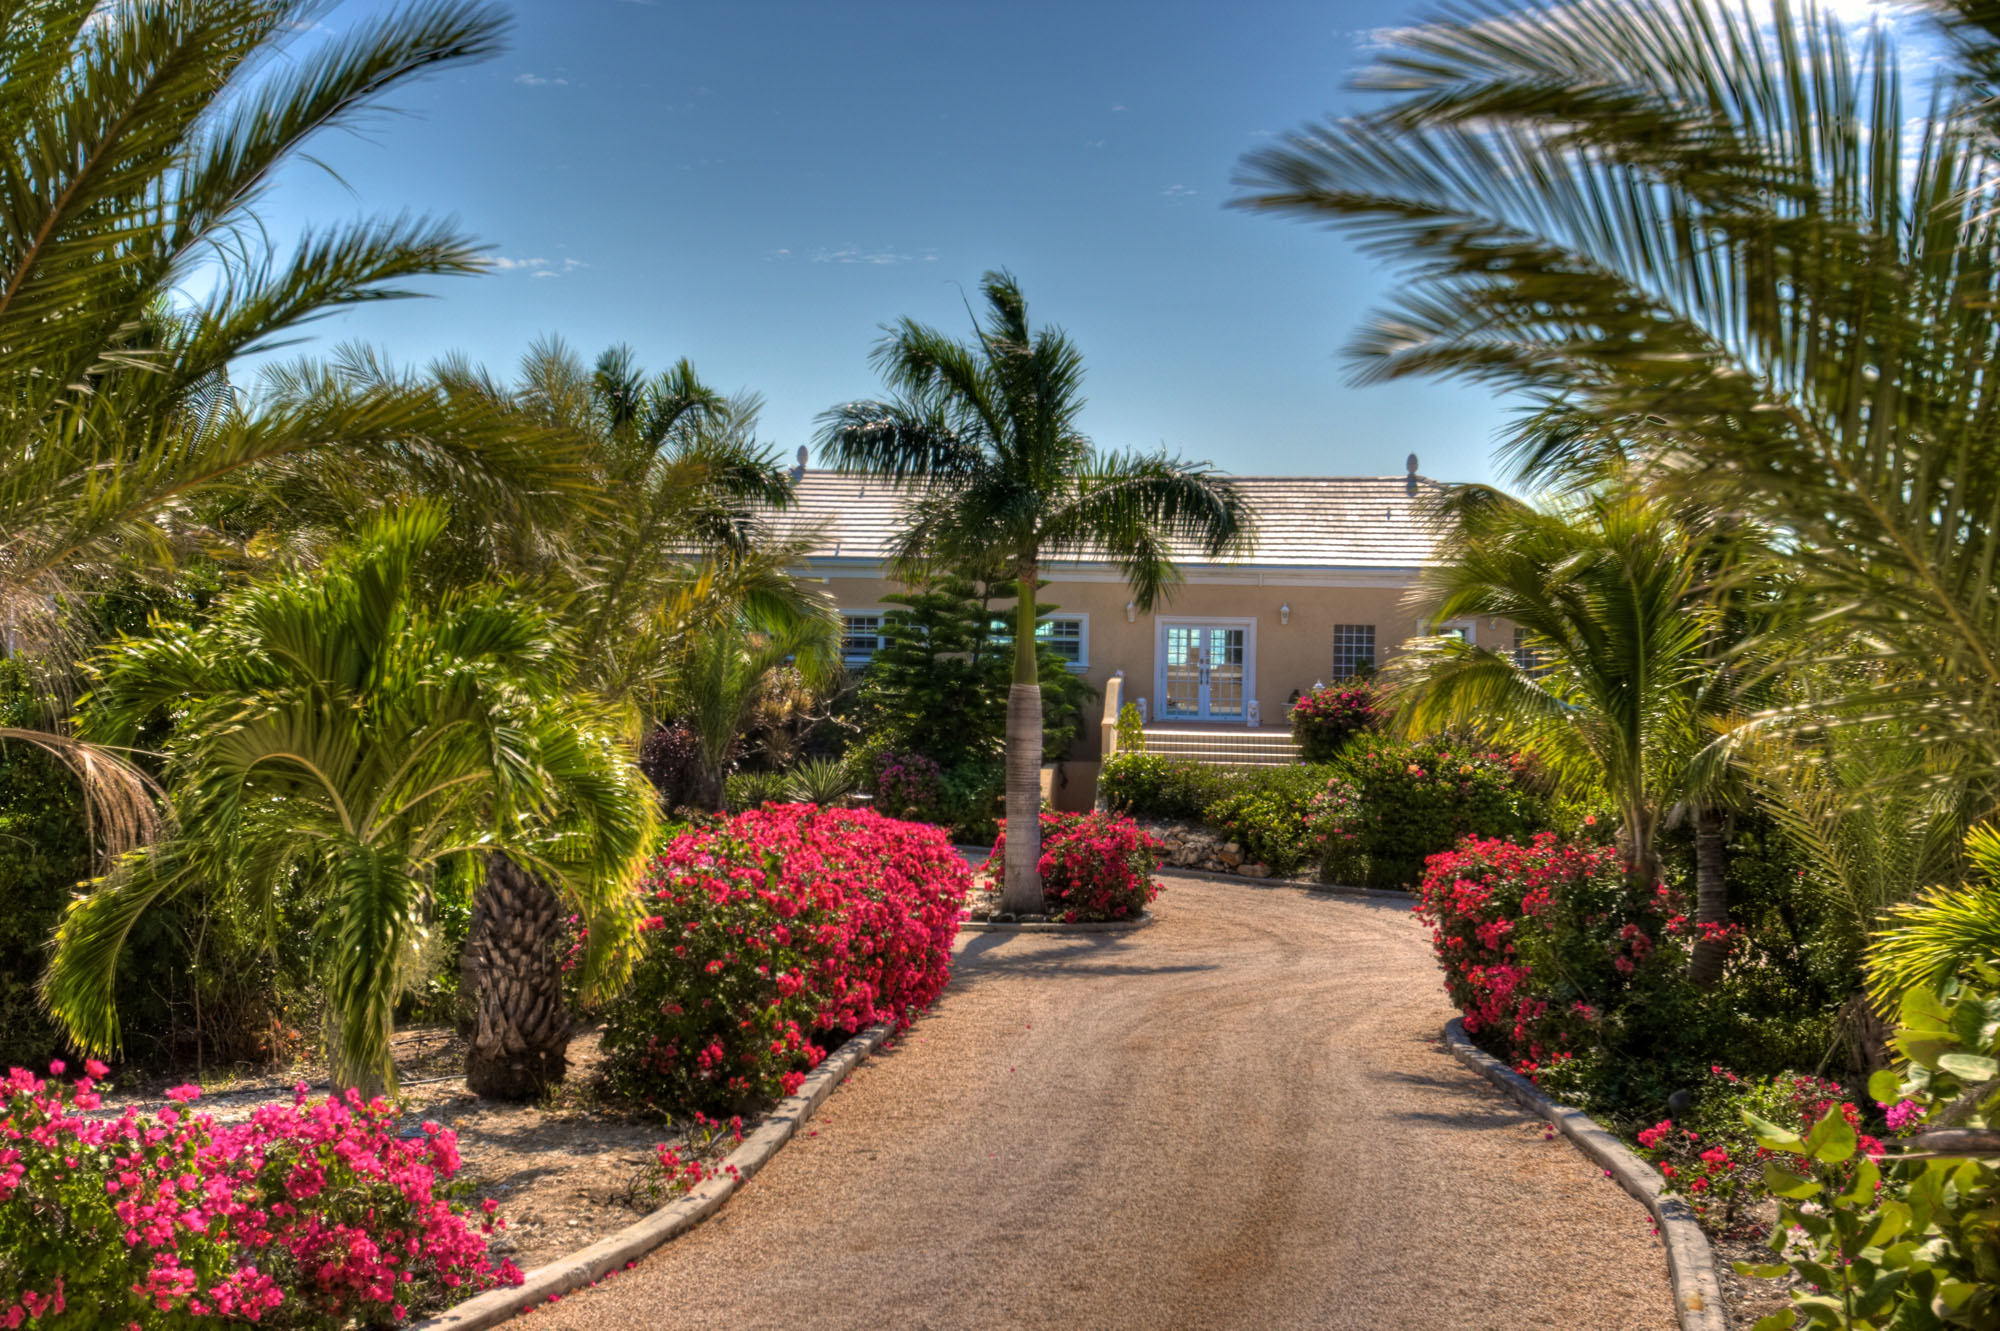 Three Dolphins Villa is set on 2 acres on the suth side of Providenciales (Provo), Turks and Caicos Islands